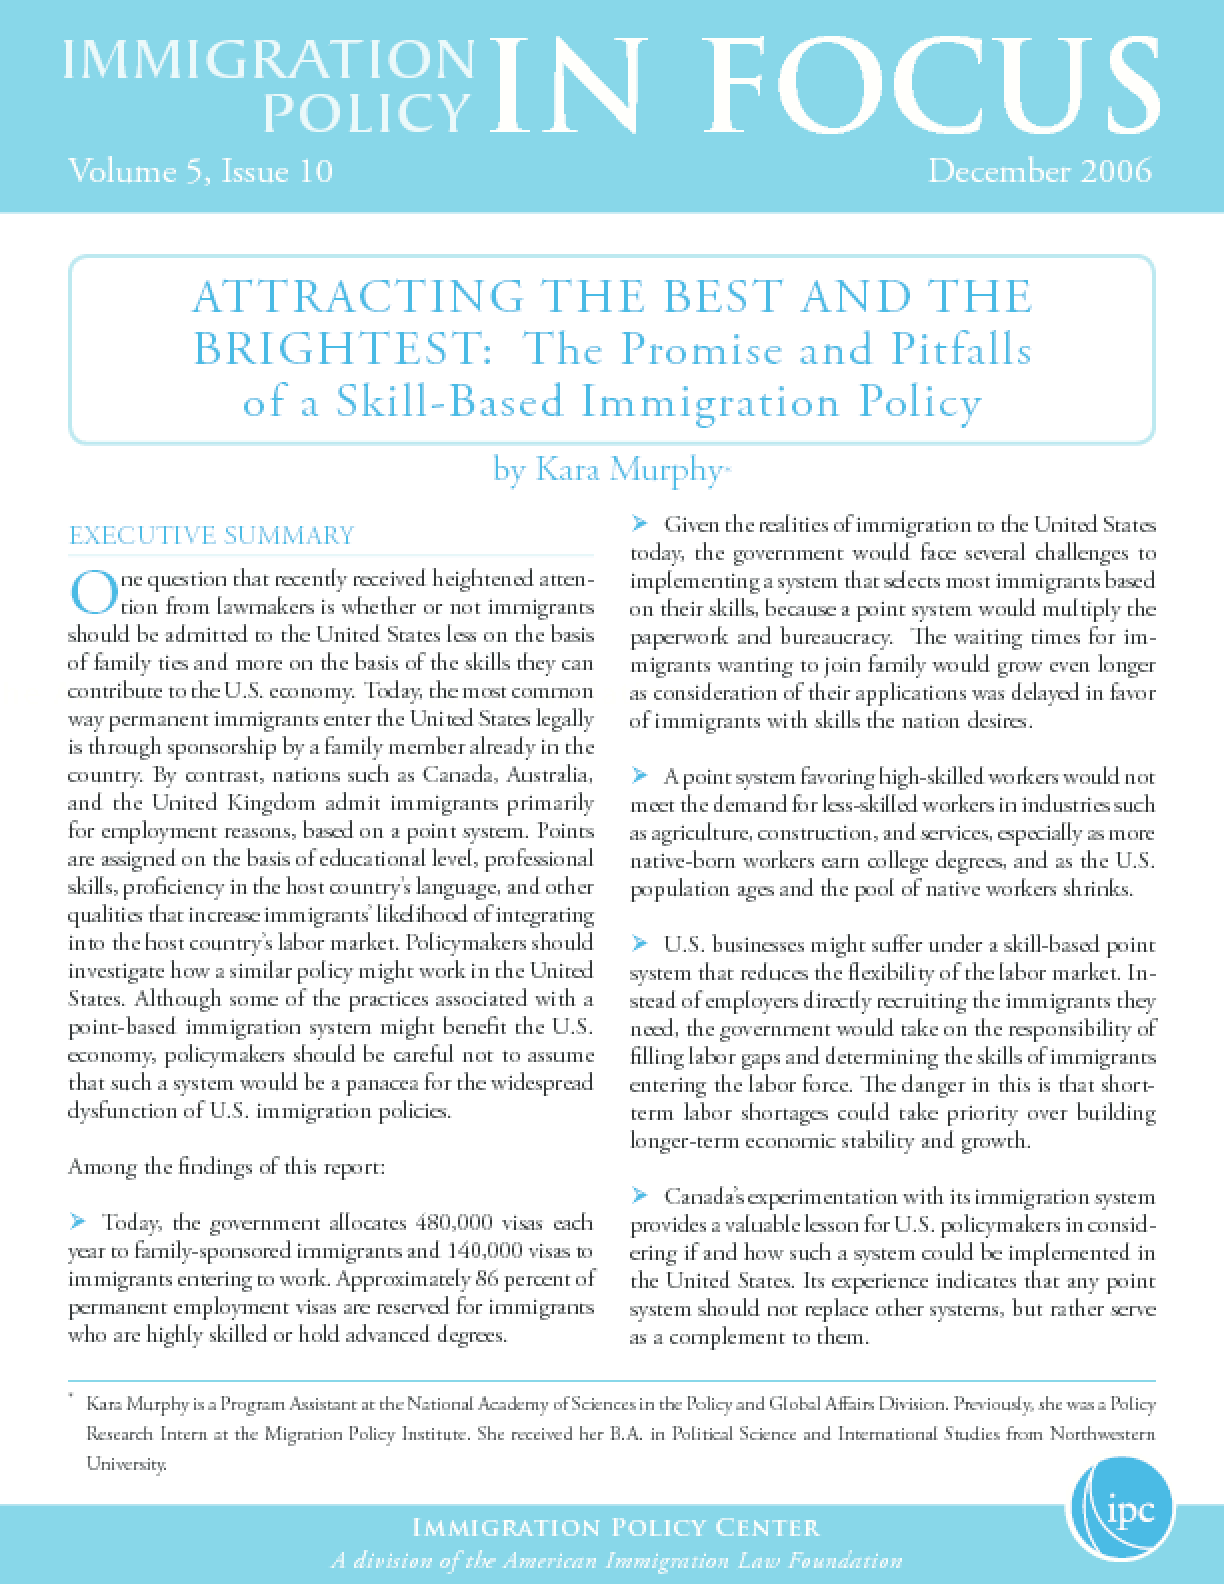 Attracting the Best and the Brightest: The Promise and Pitfalls of a Skill-Based Immigration Policy